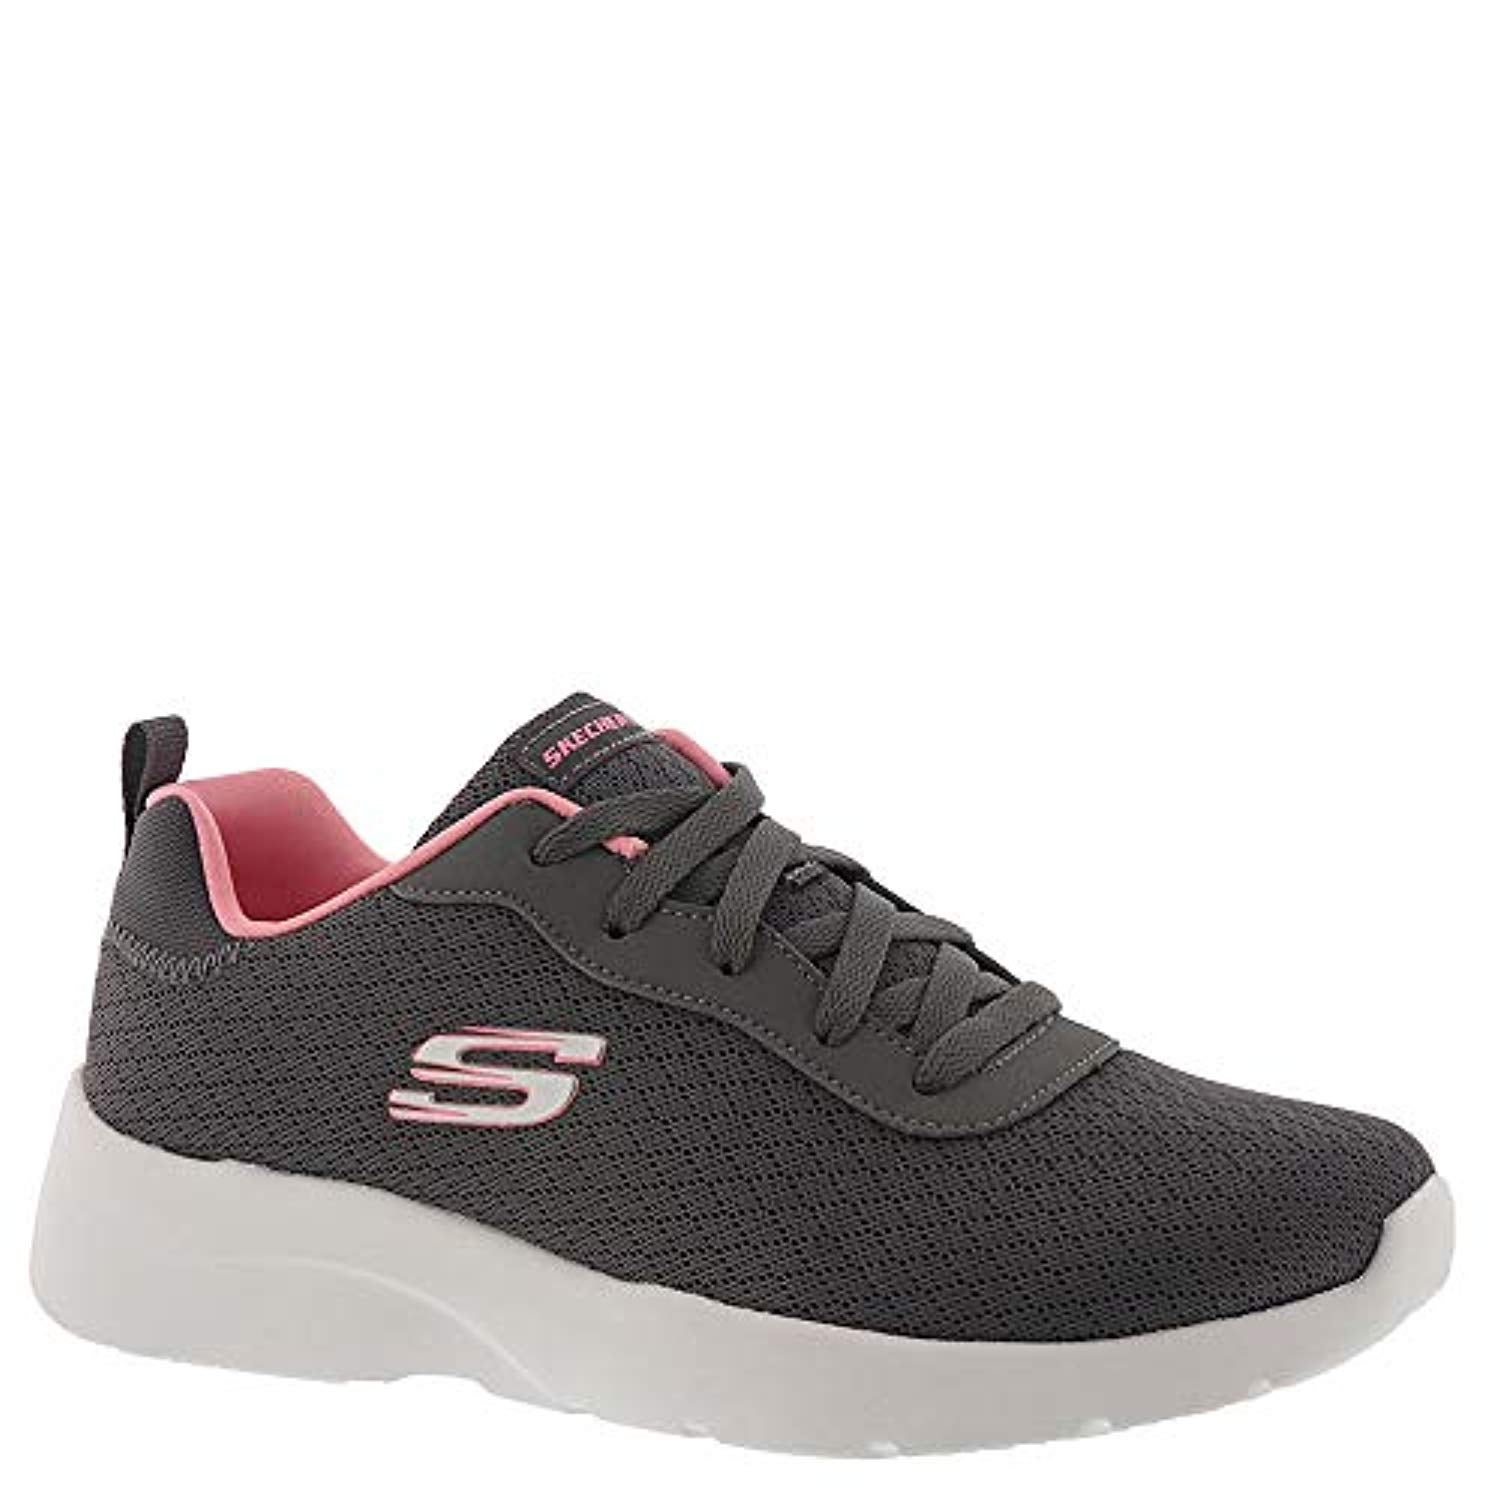 Eye Womens Sneakers Charcoal/Coral